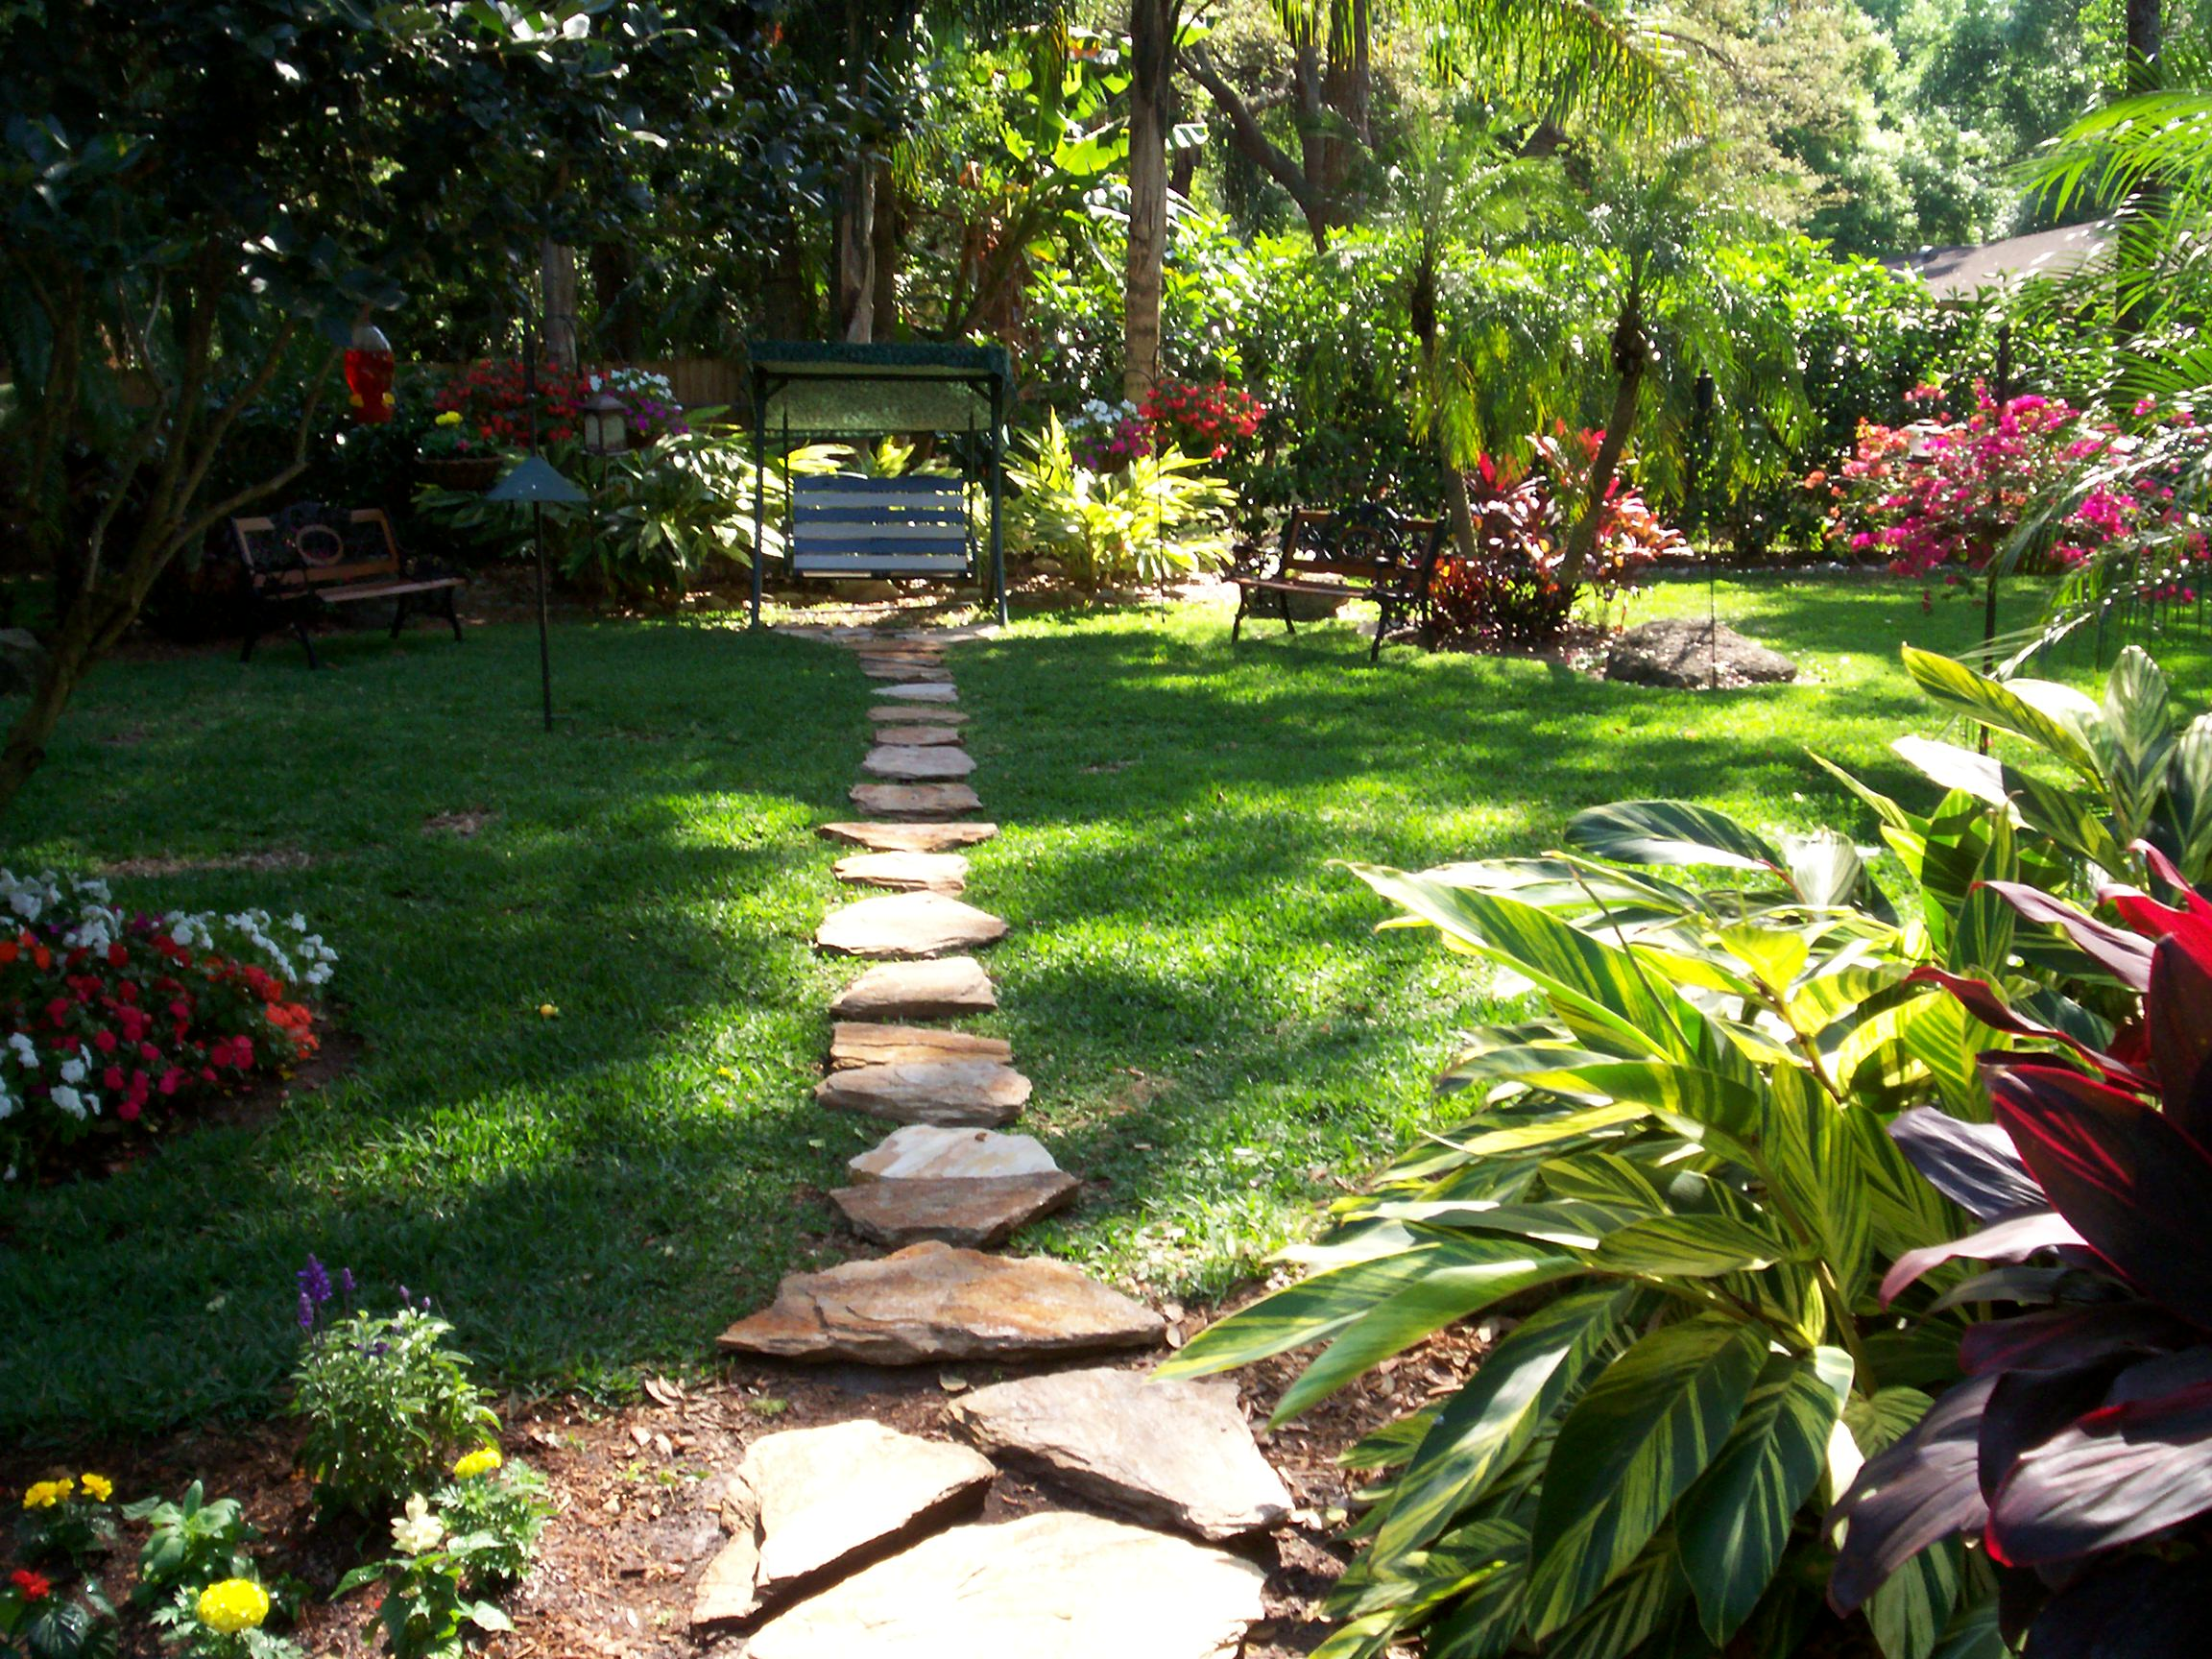 Landscaping Company Green Day Tree And Landscape Co Is A Full Service Company That